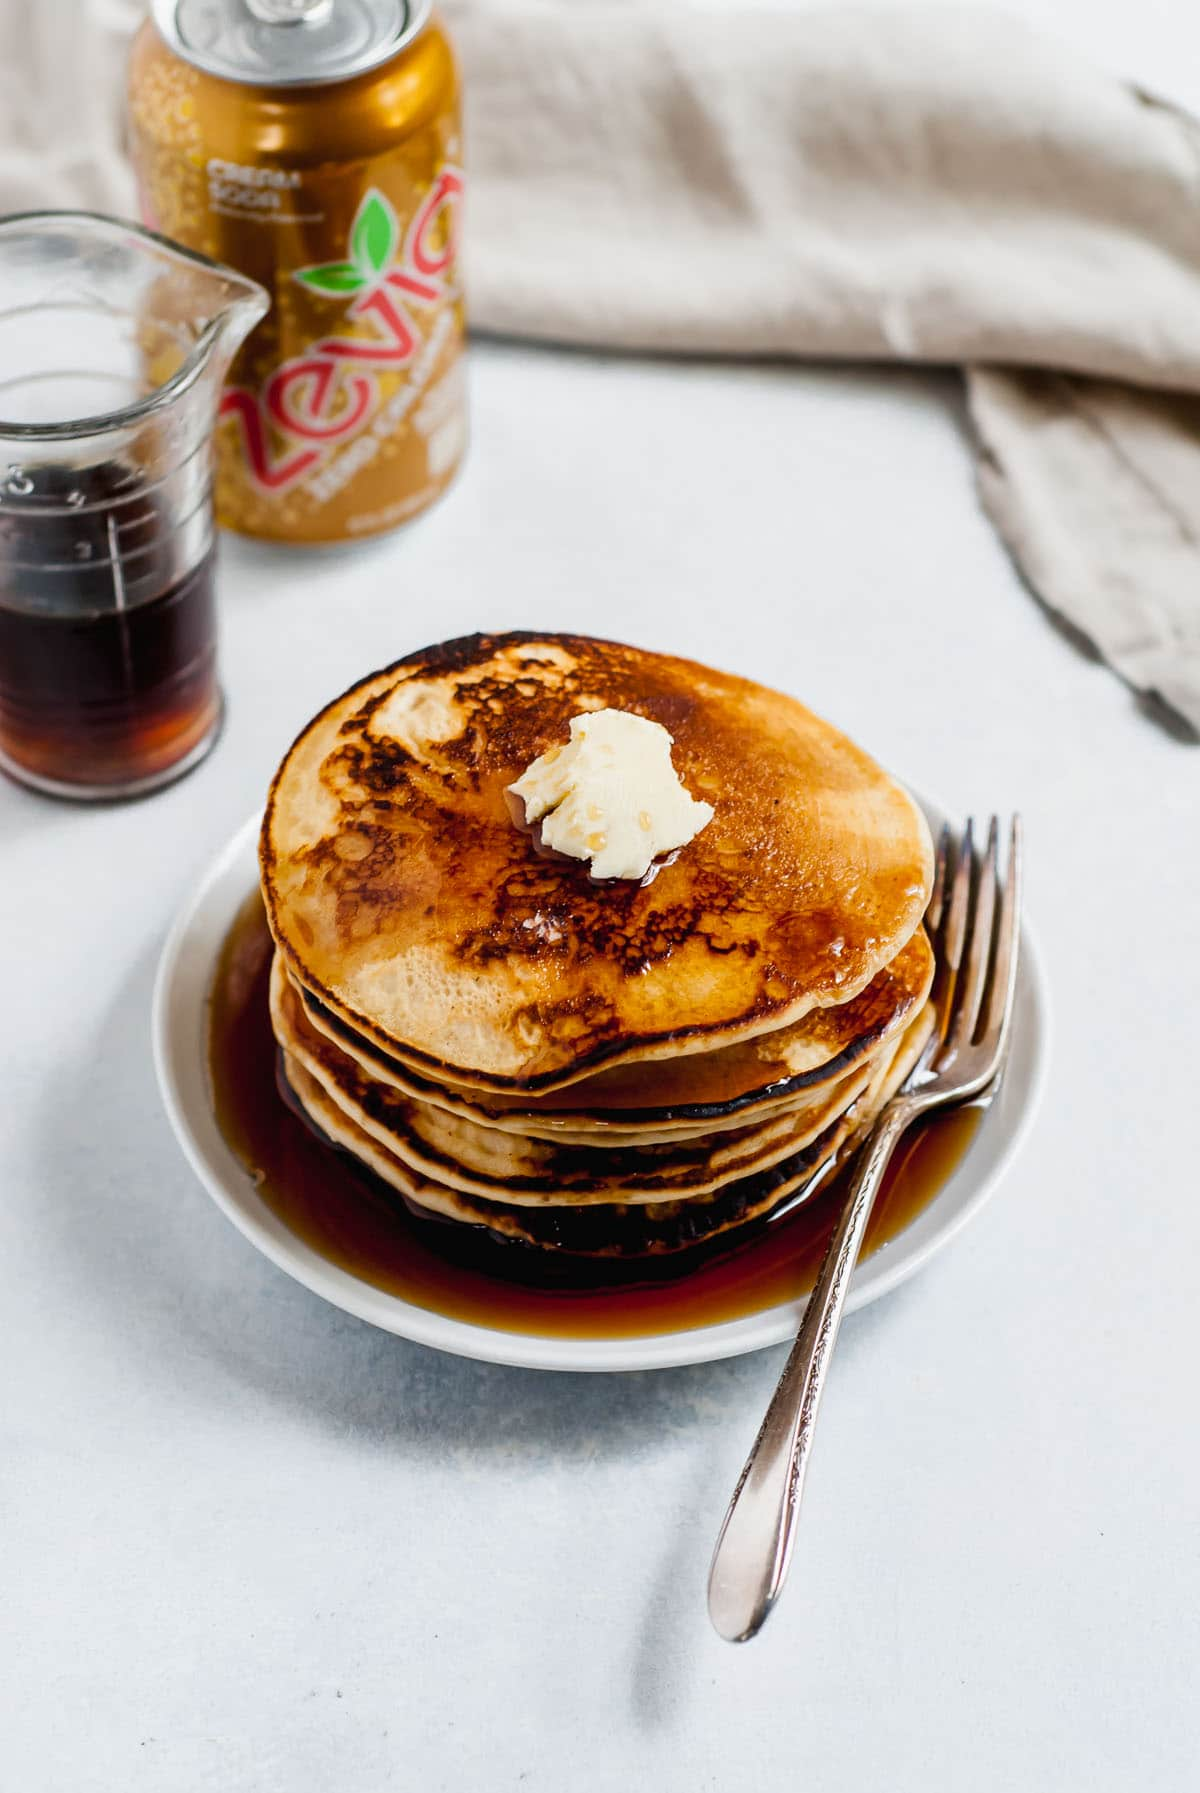 Pancakes on a plate with butter and syrup